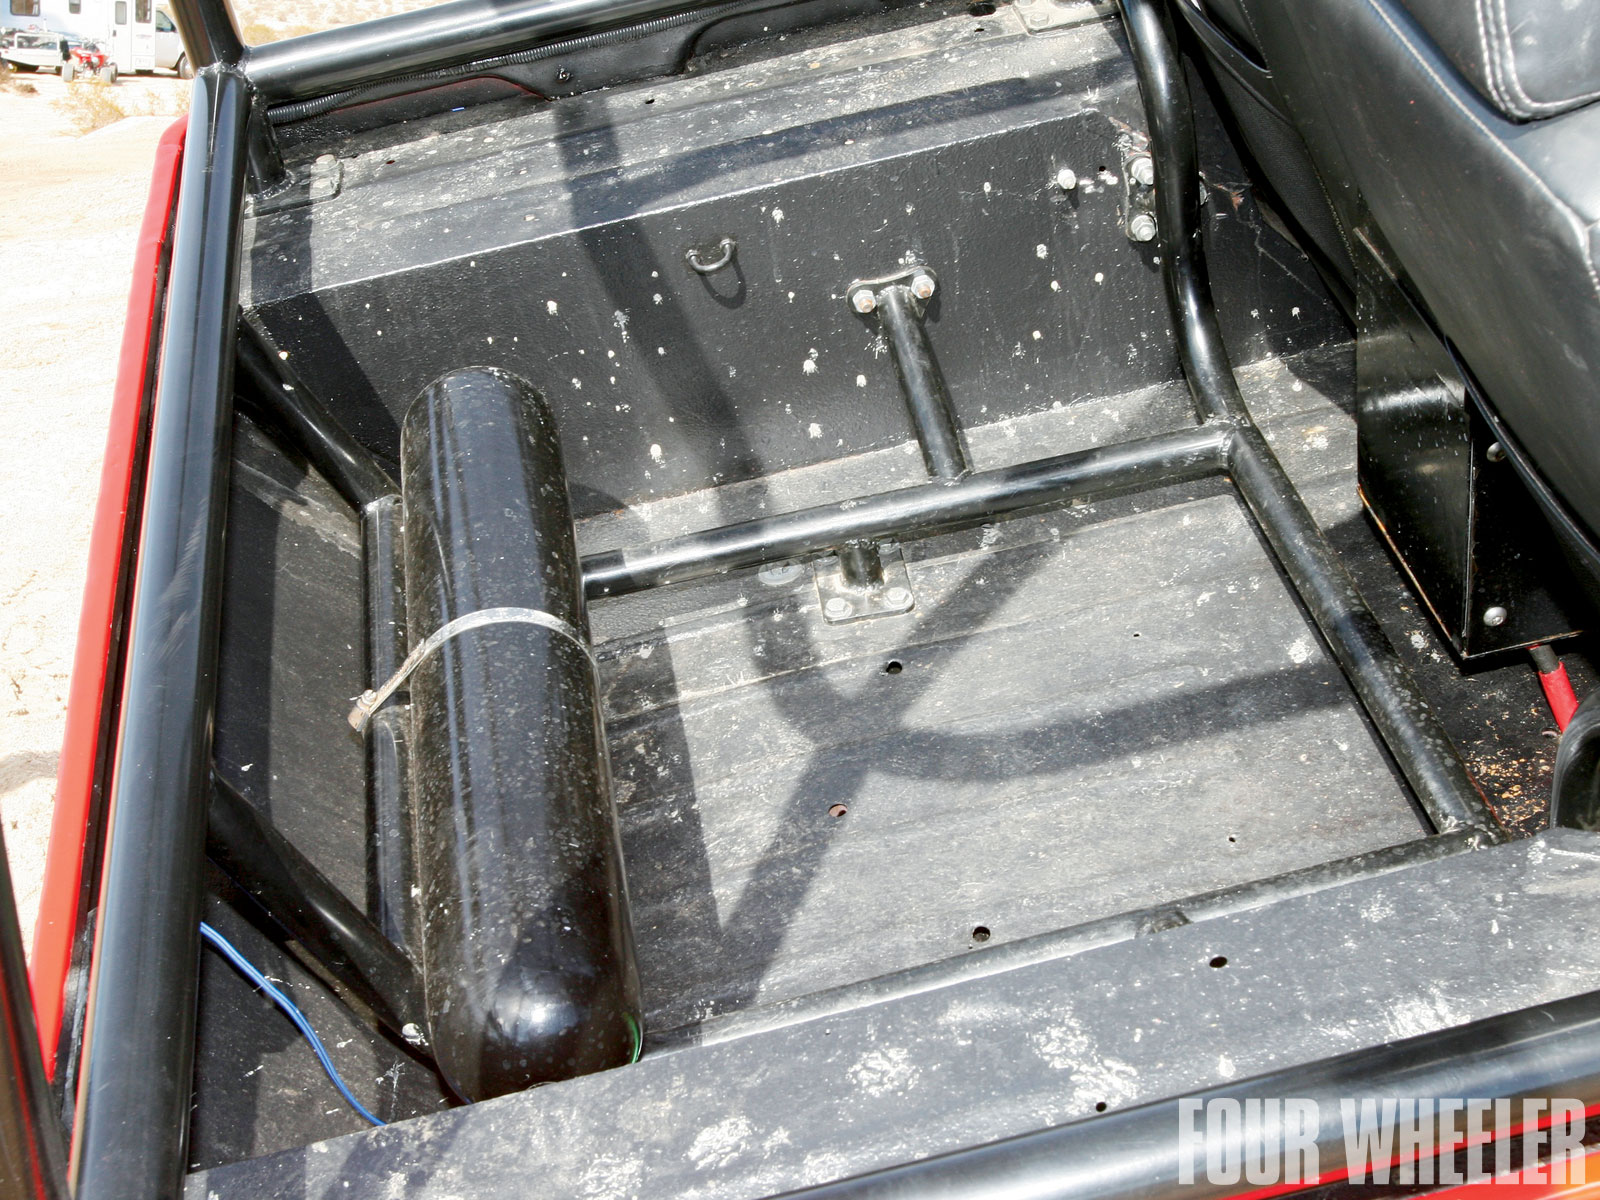 129 1102 07 o+129 9902 good vibrations 1966 jeep cj5+cargo area